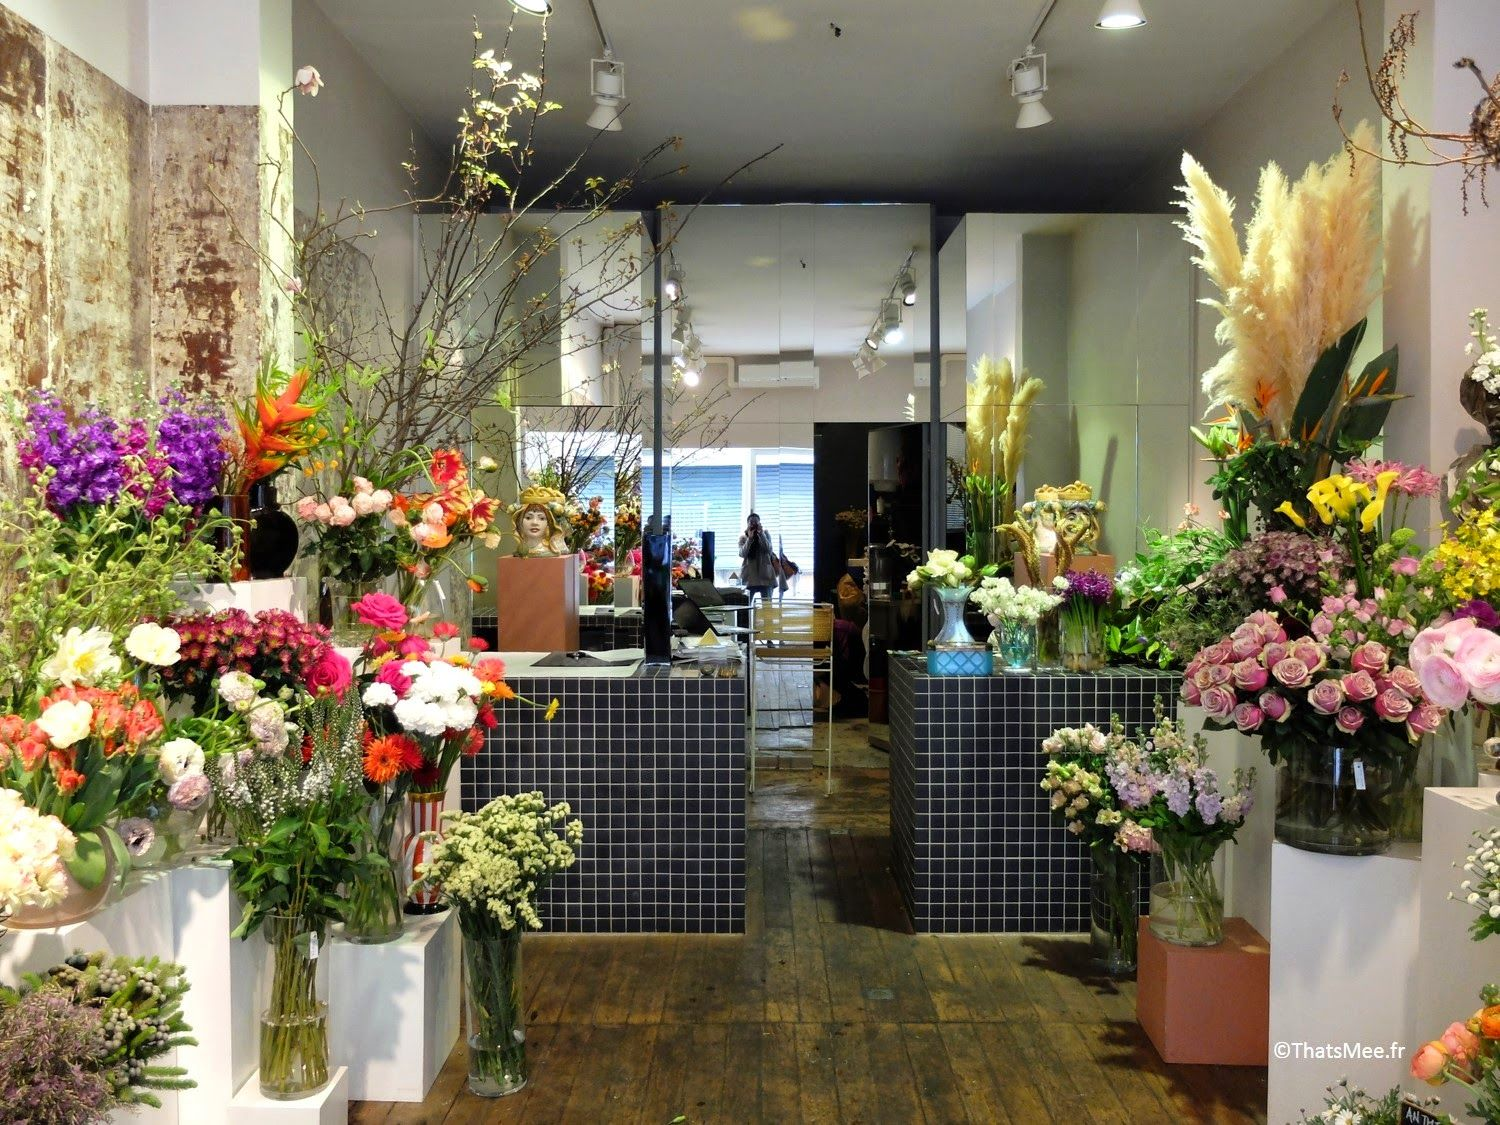 Fleuristes Paris Boutique Debeaulieu Fleuriste à Paris Flowers Shop Flower